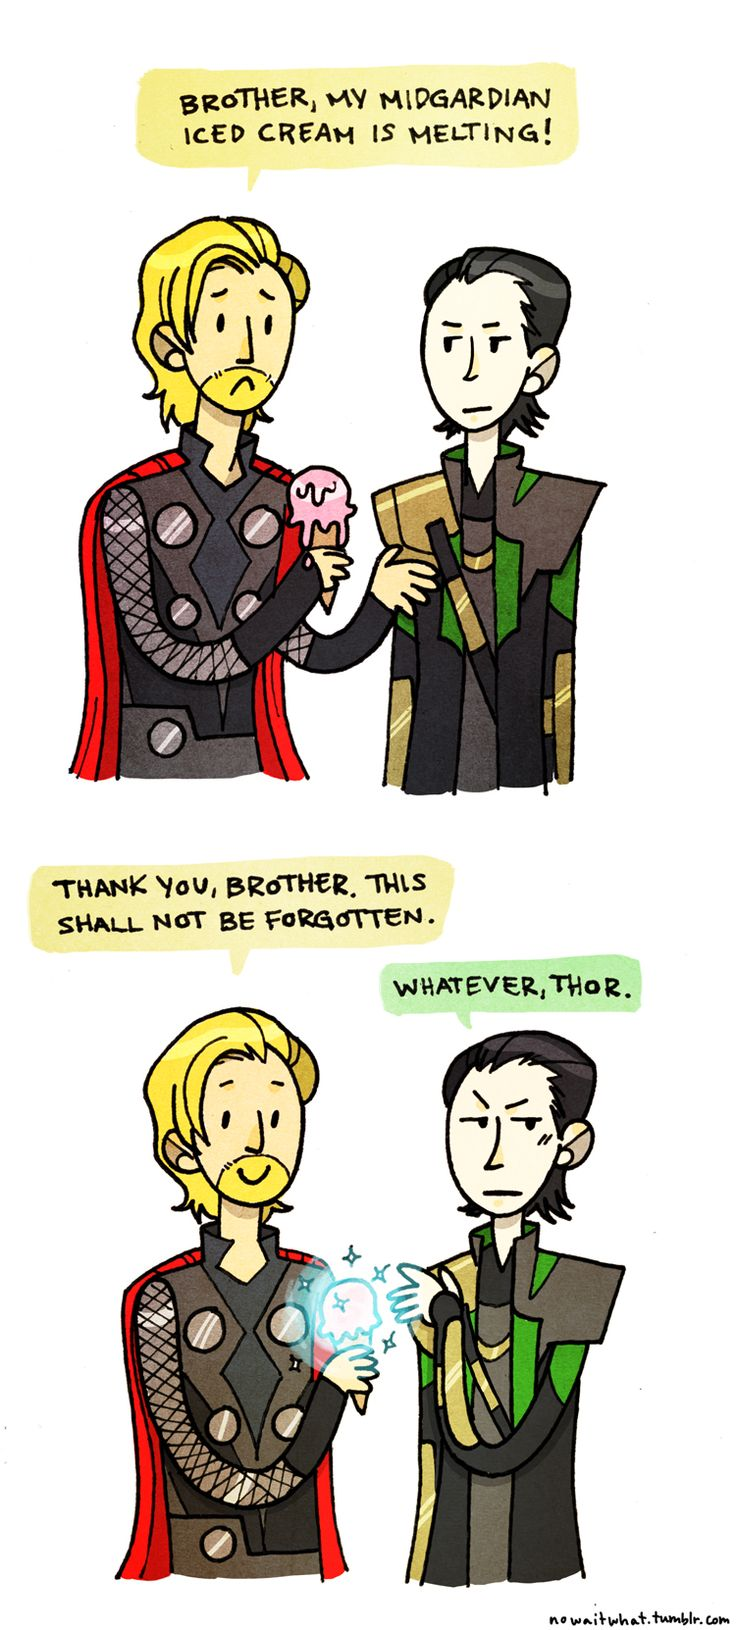 #Thor #Loki: Avengers Assembl, Comic Books, Geeky Things, Ice Cream, Frostings Giant, Fandom, Thor Loki, Icecream, Thor And Loki Brother